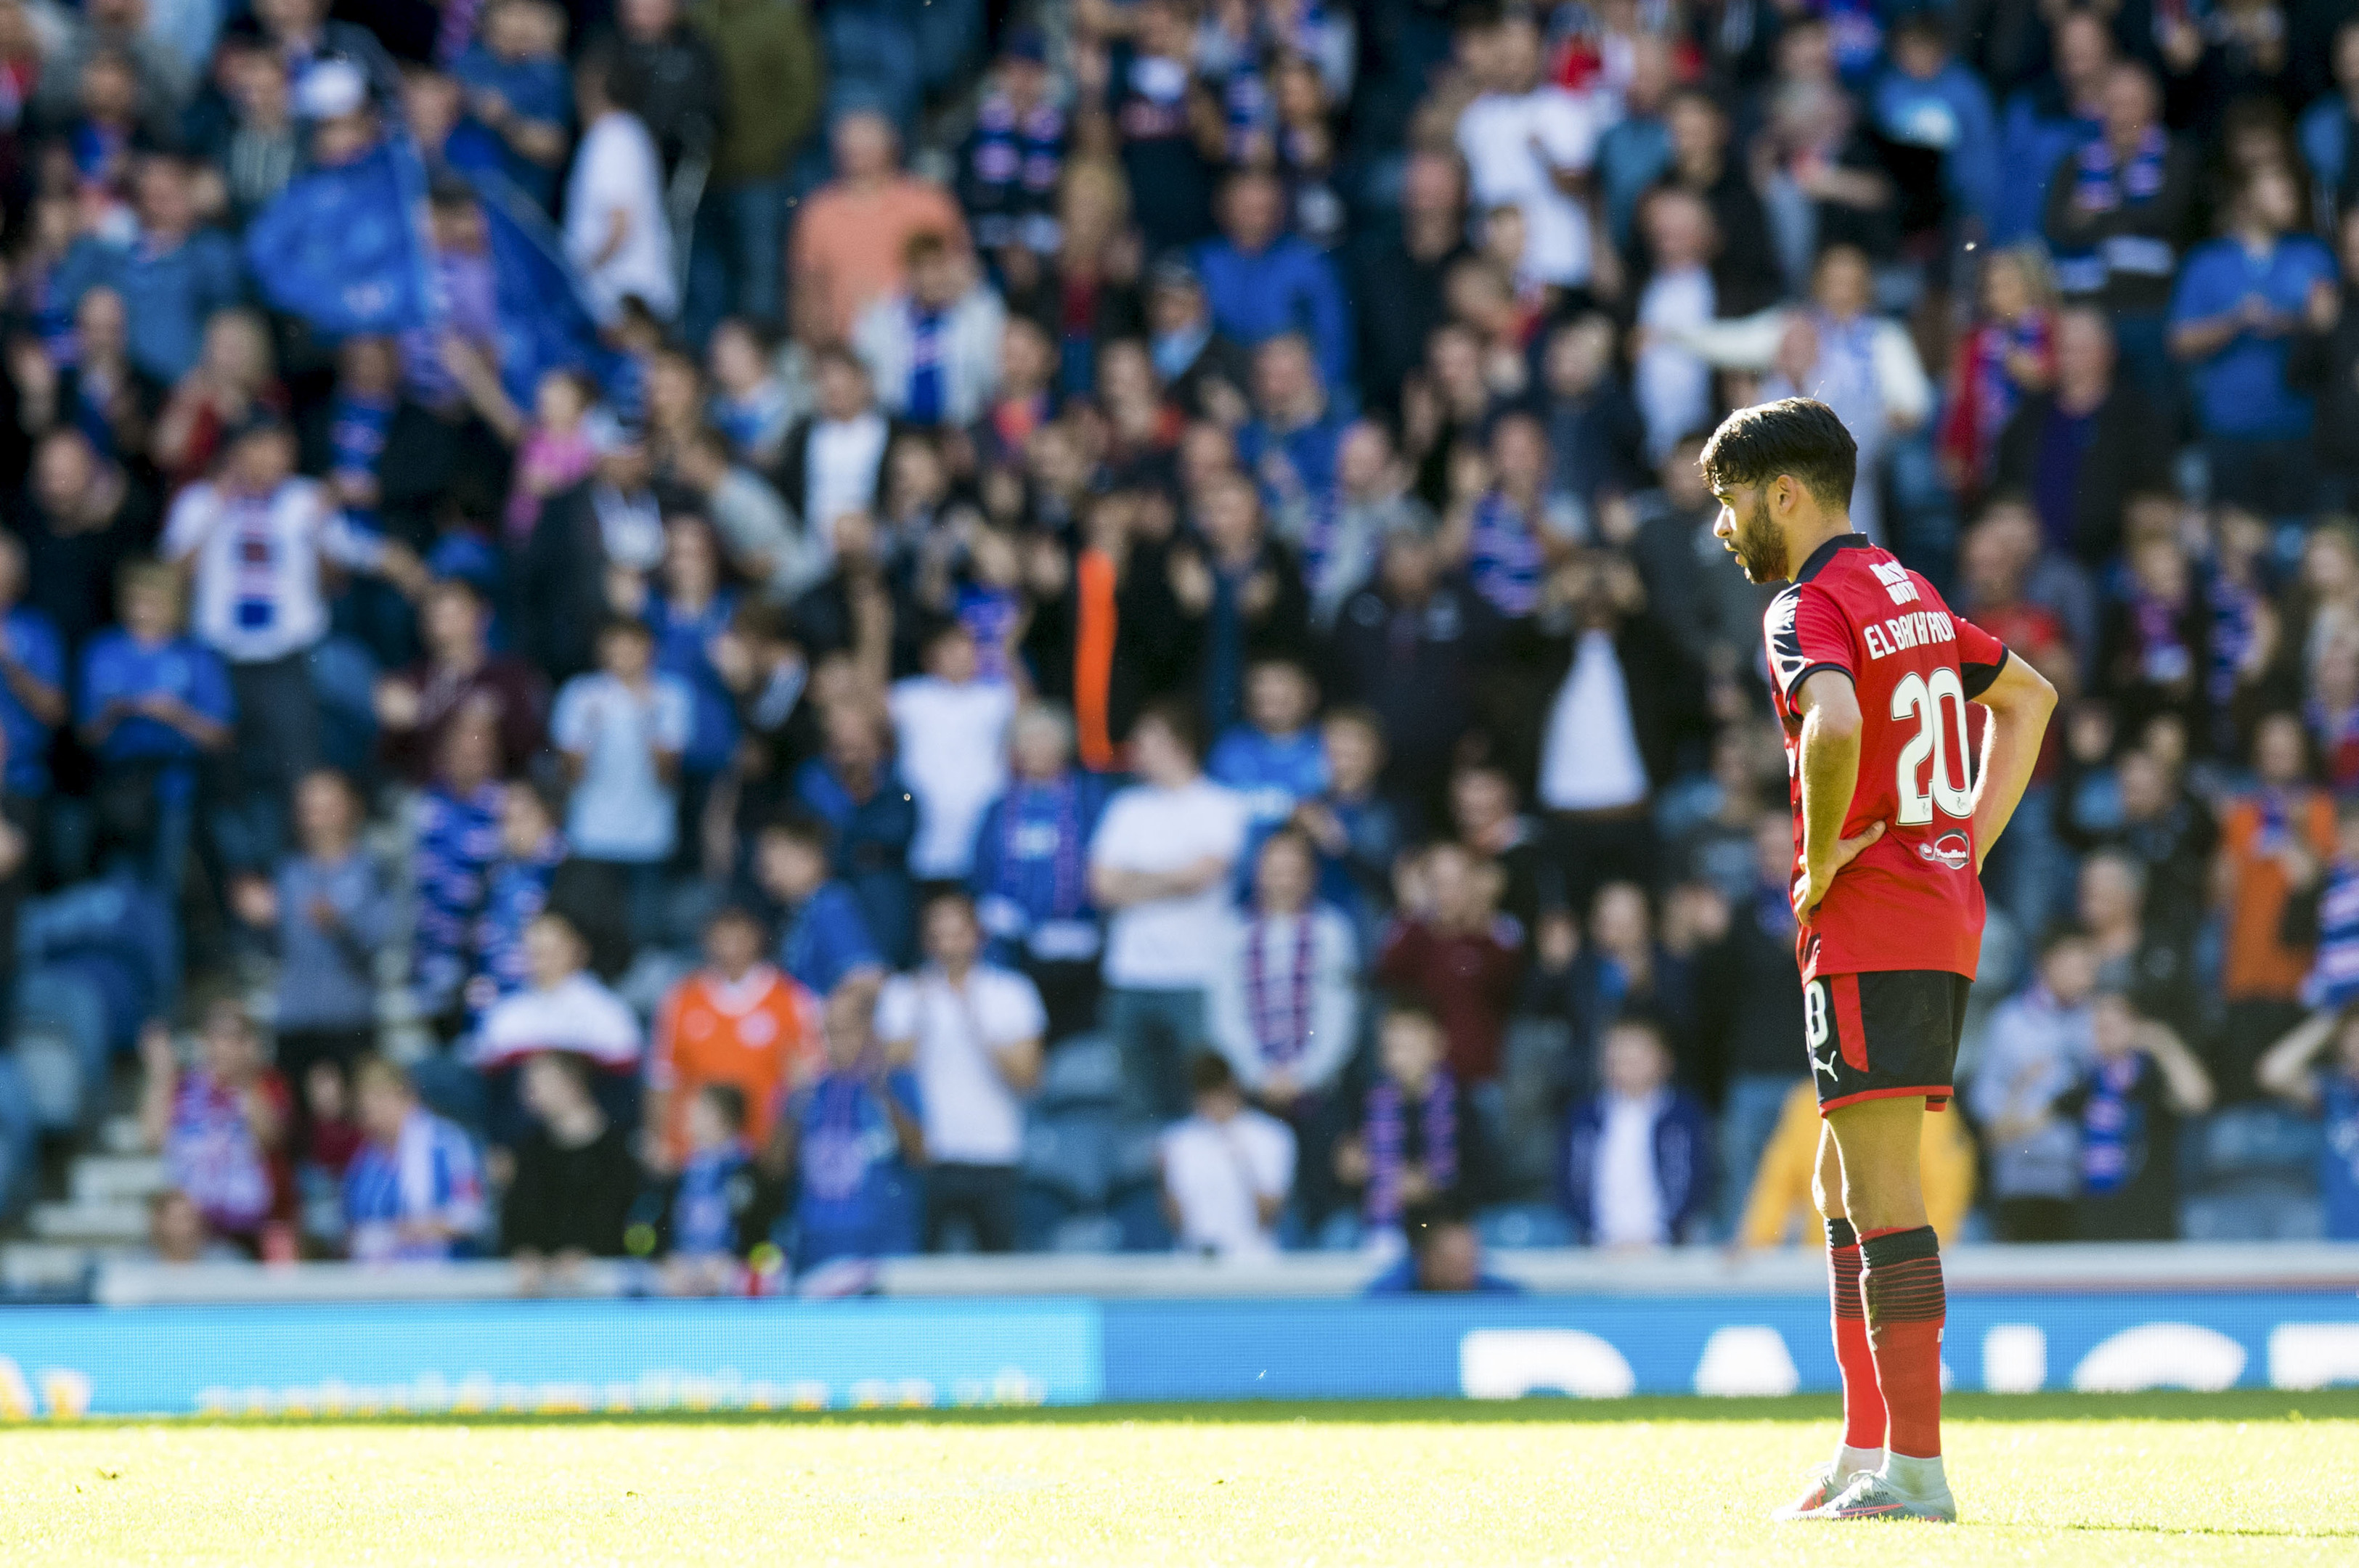 It was dejection for Faissal El Bakhtaoui and his Dundee team-mates at Ibrox.